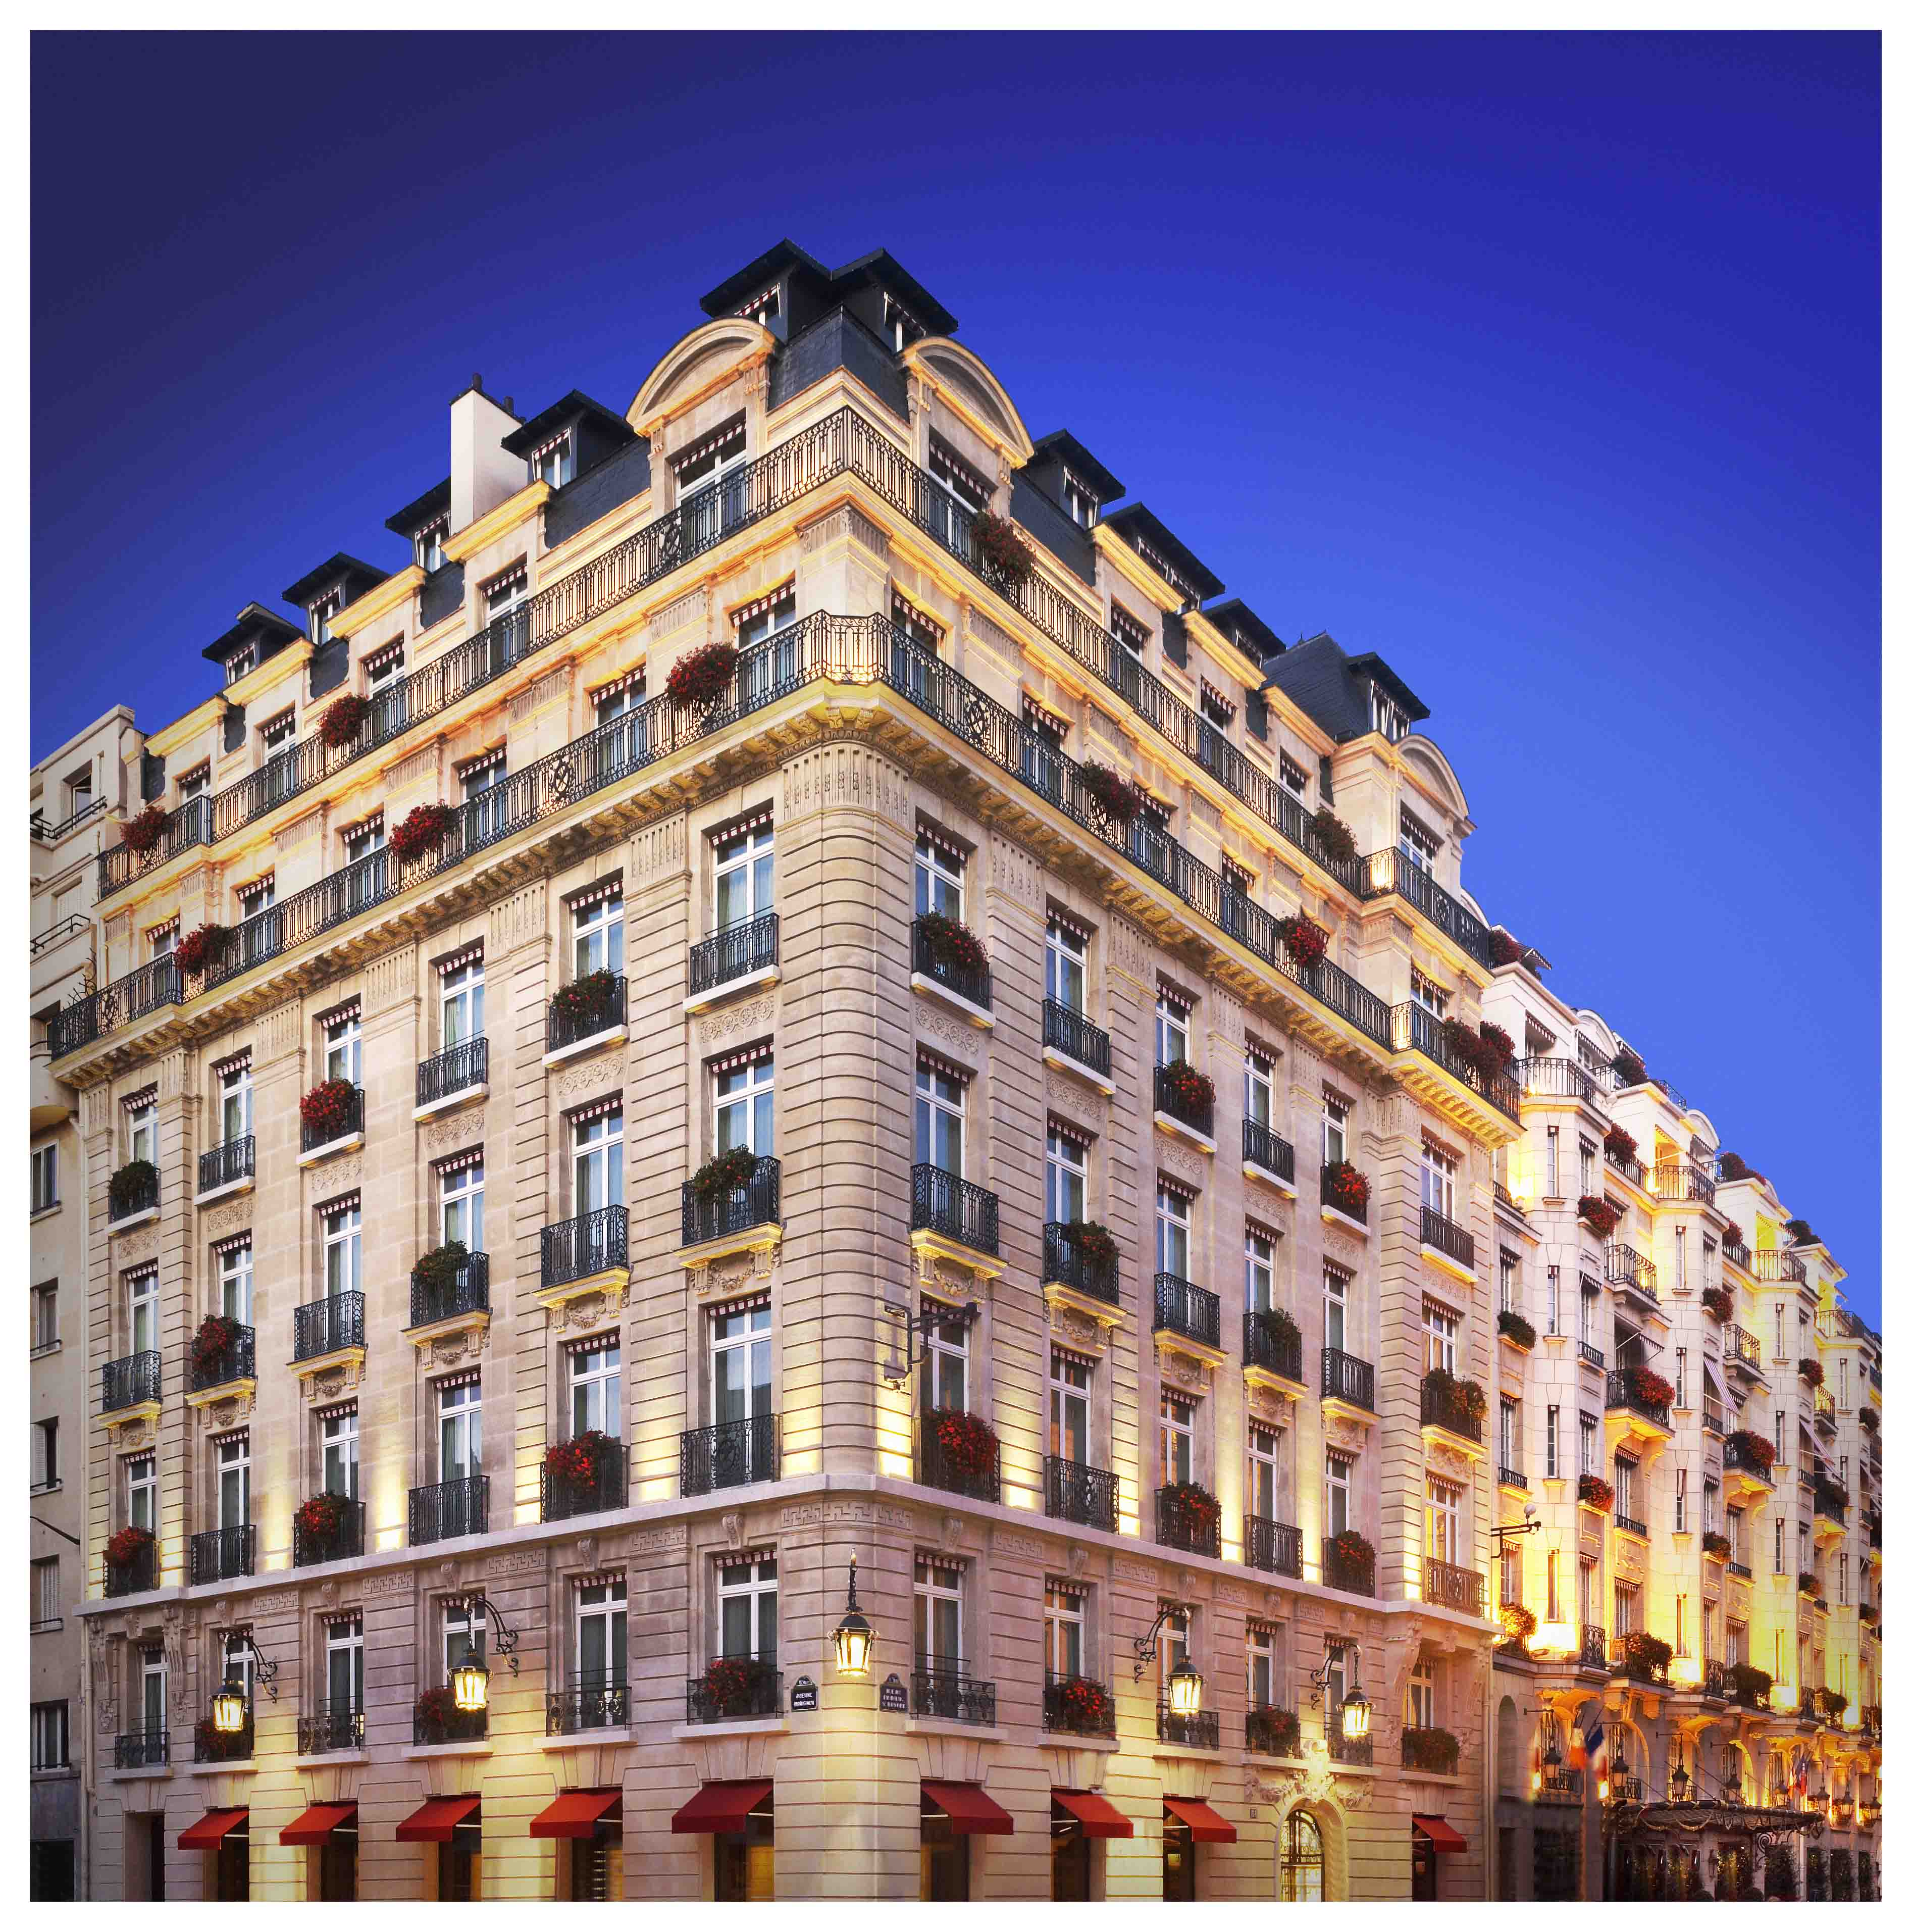 Le bristol paris luxury travelers guide for Luxury hotel accommodation